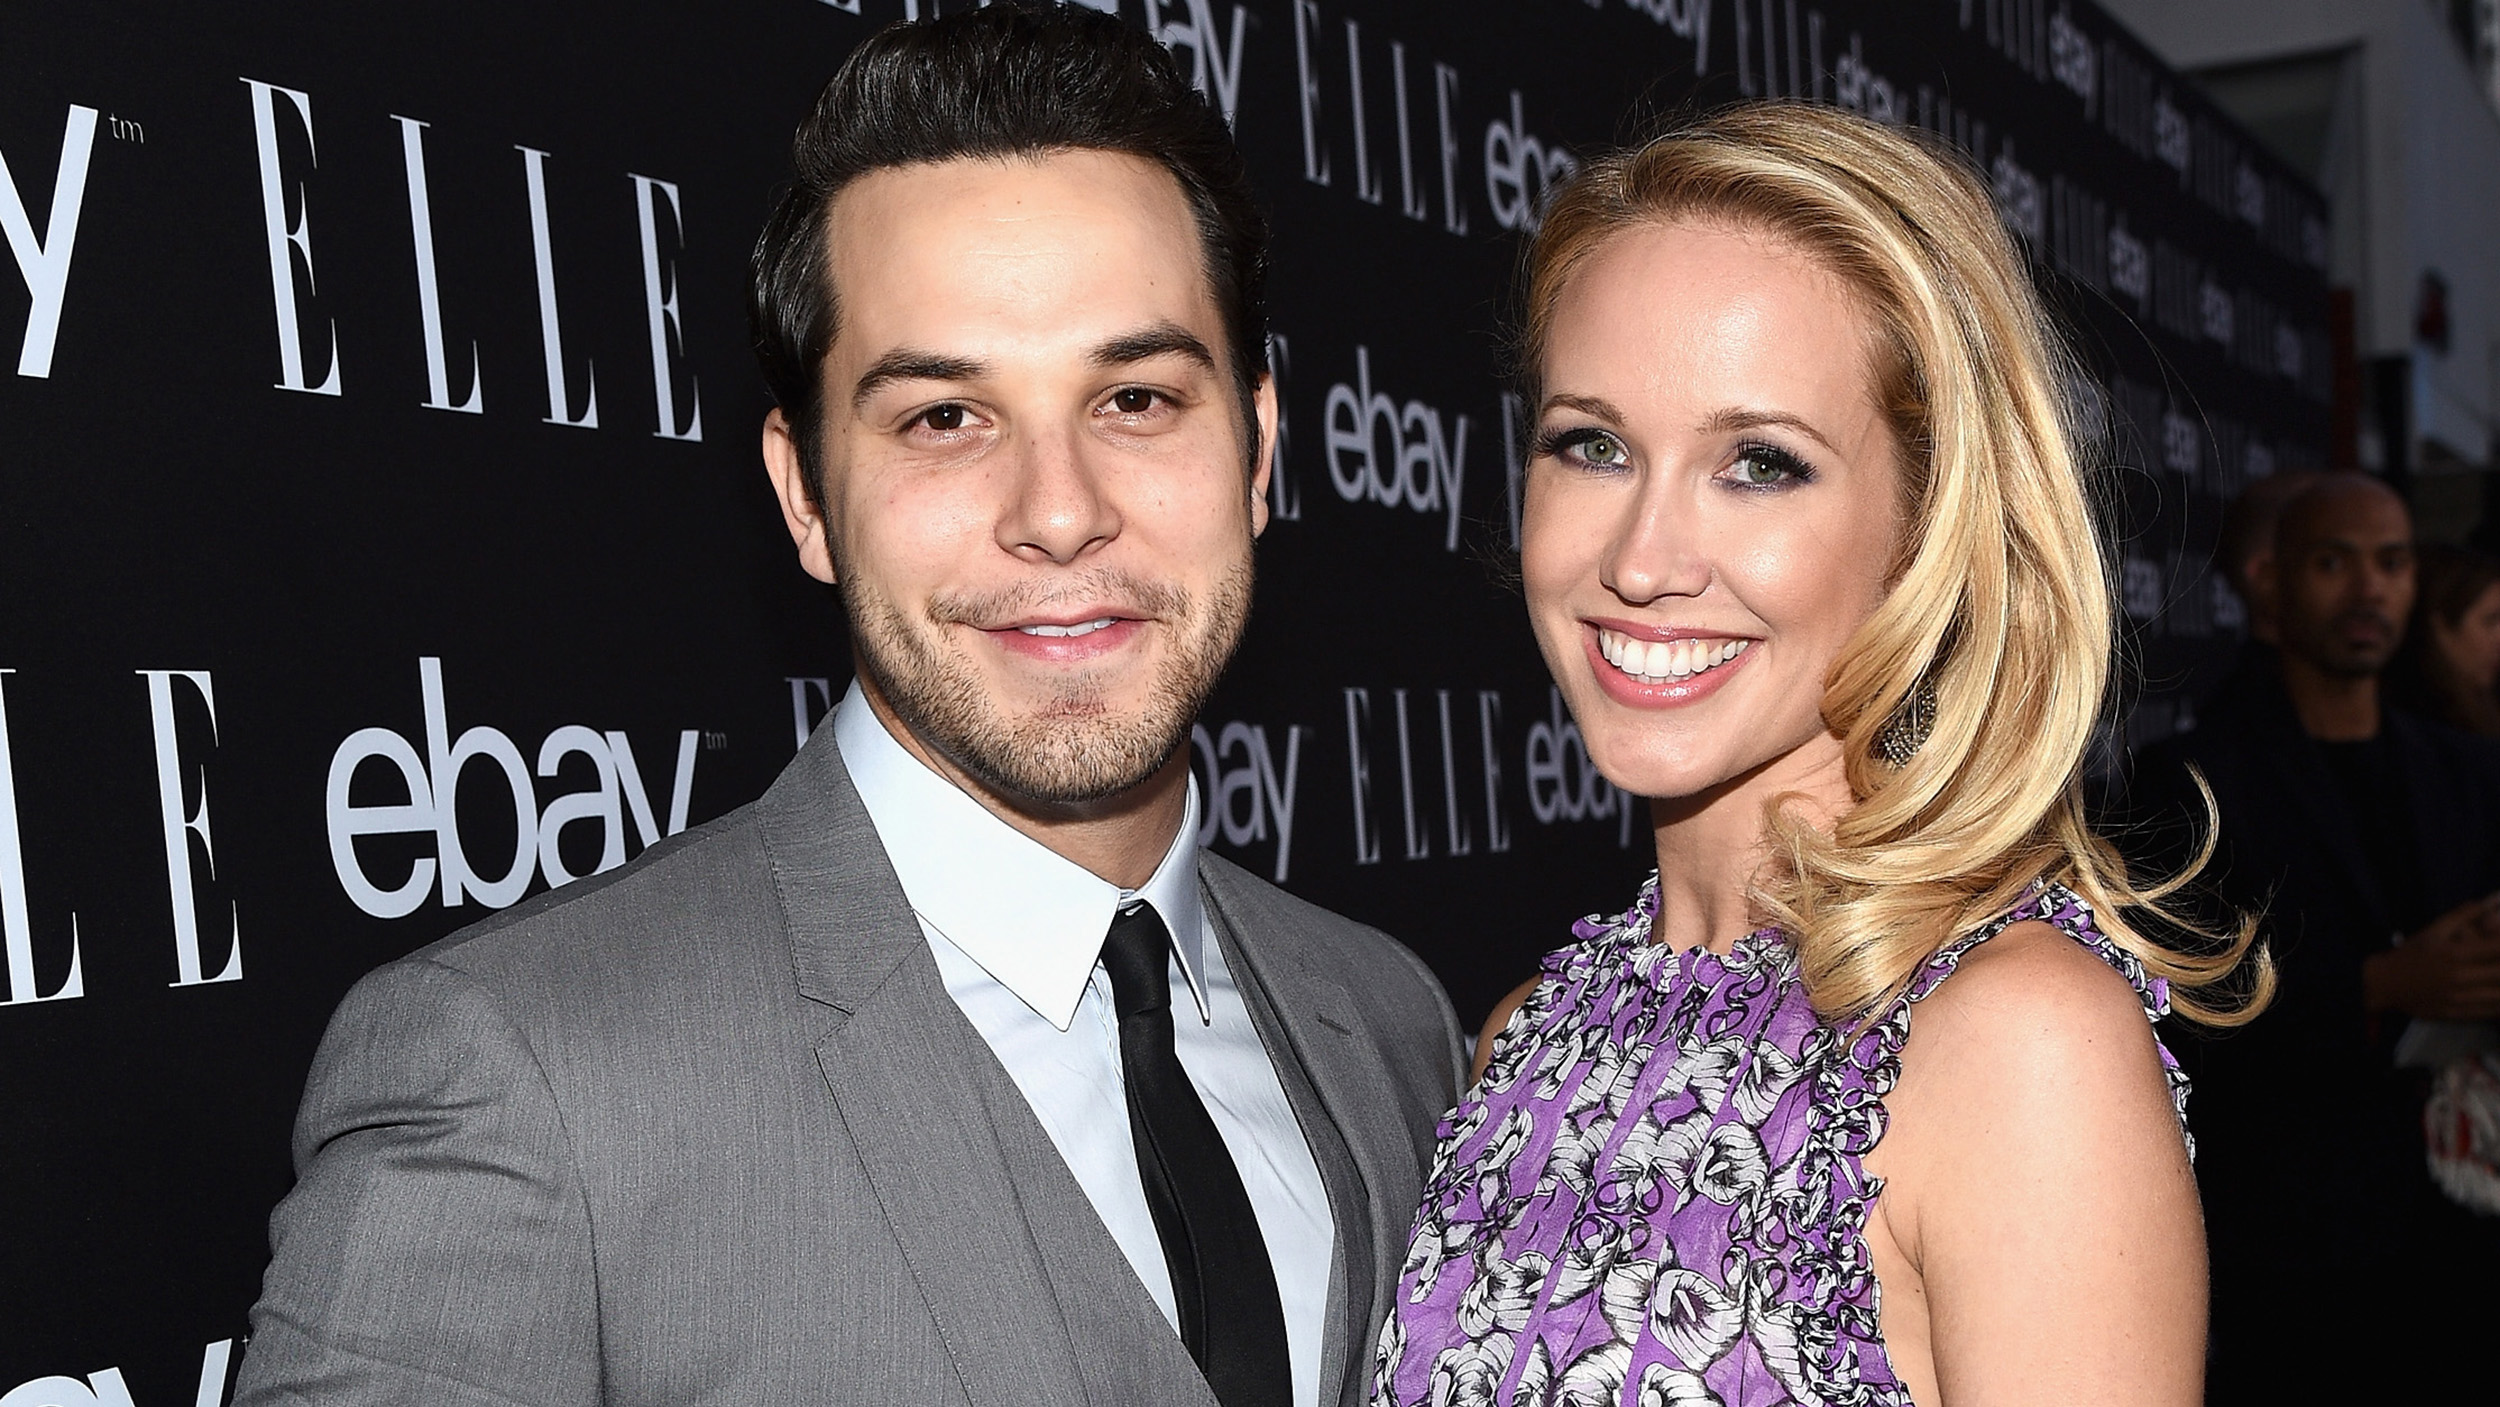 Aca-amazing! 'Pitch Perfect' stars Skylar Astin, Anna Camp get engaged